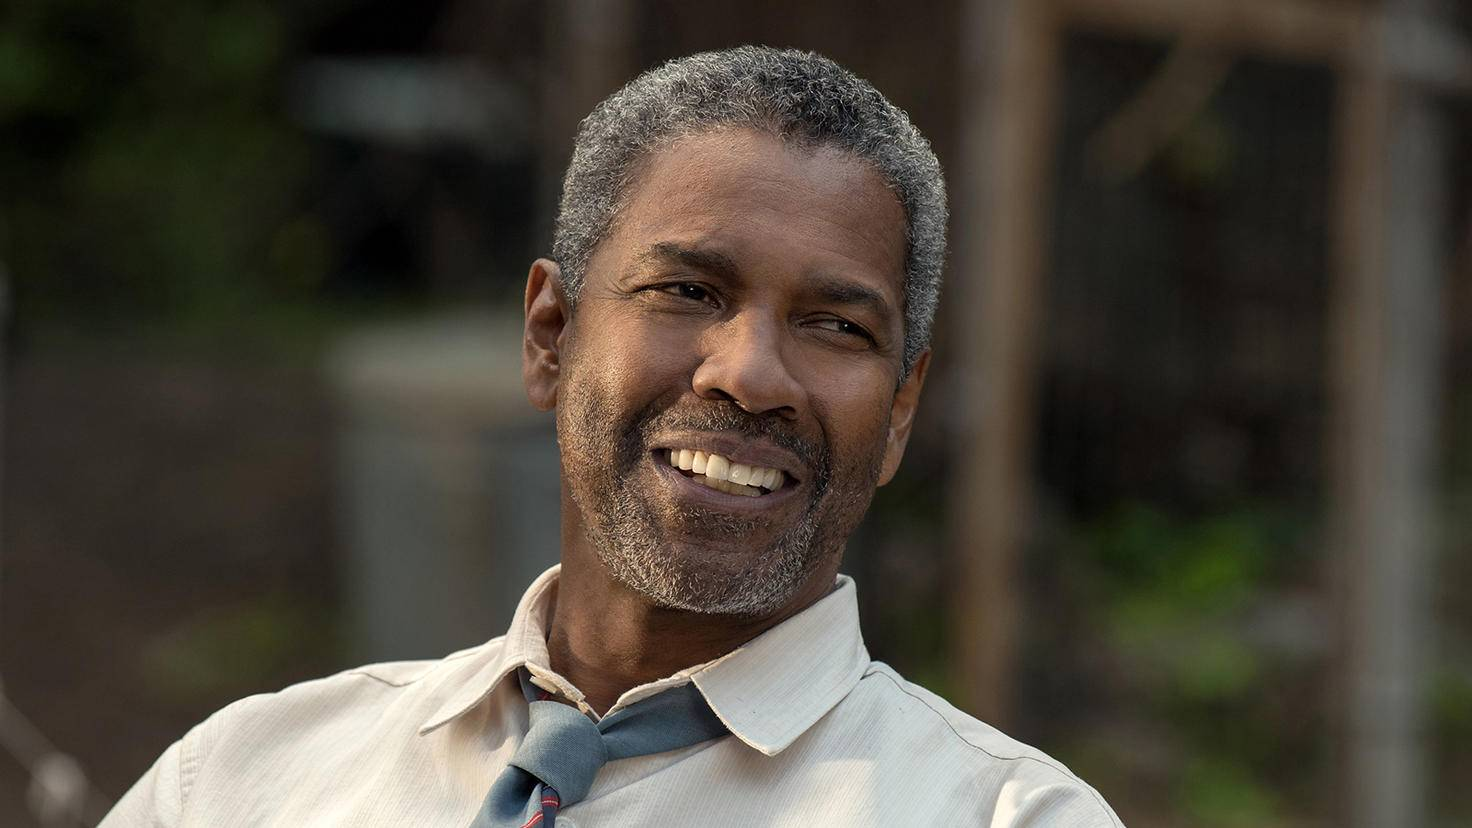 Denzel Washington-David Lee MMXVI Paramount Pictures Corporation. All Rights Reserved